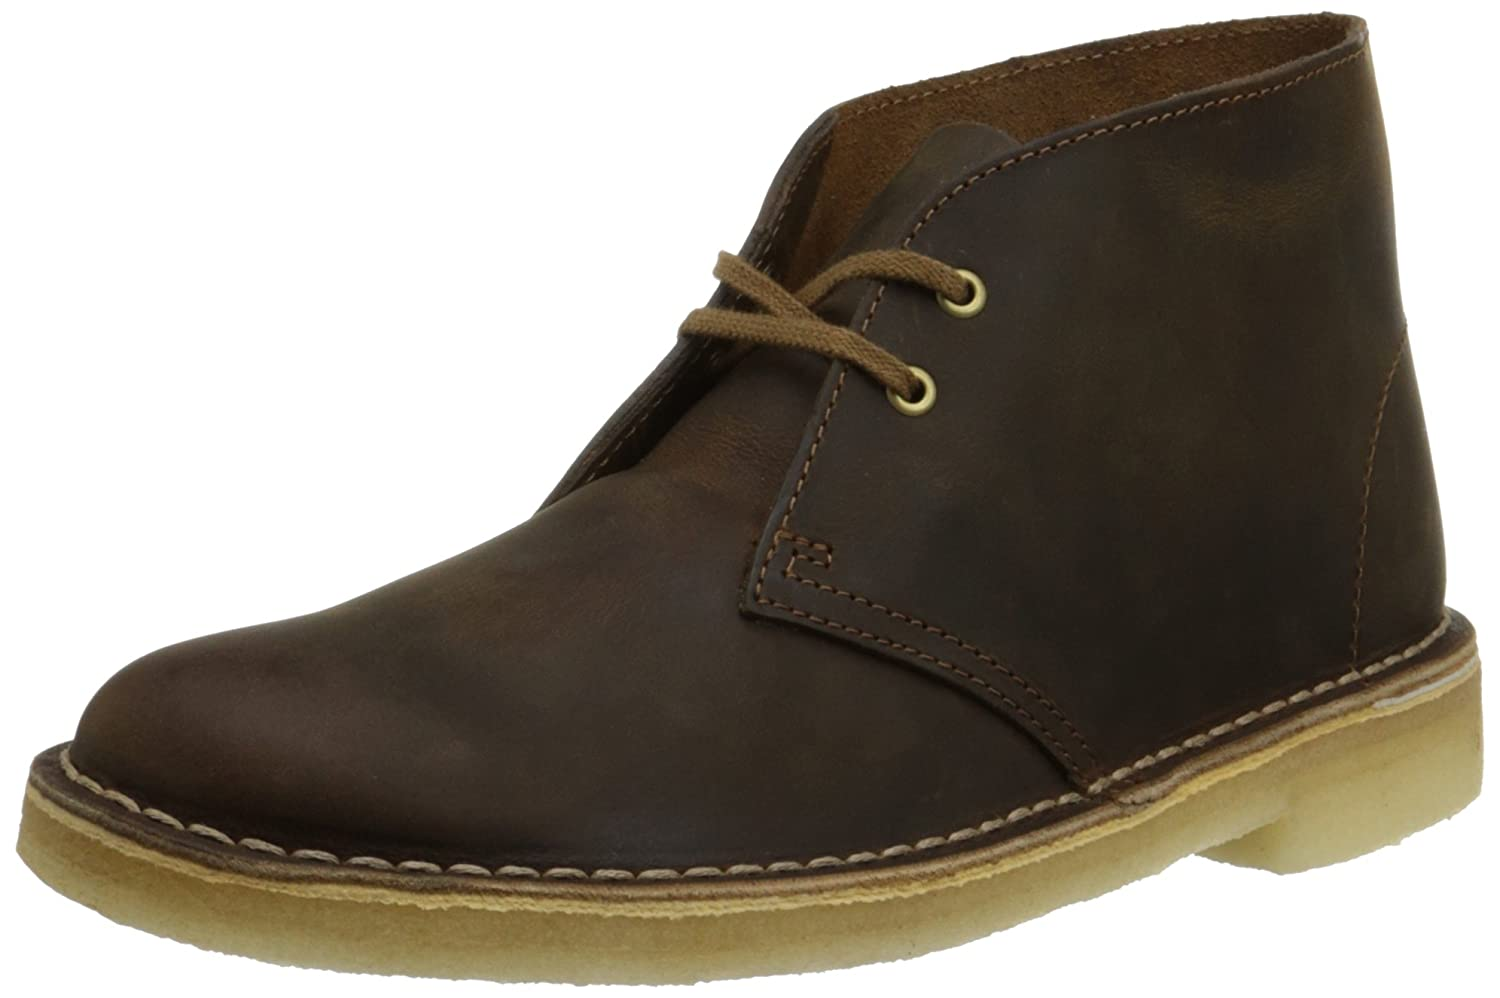 CLARKS Women's Desert Boot Ankle Bootie B00UCVQ5TC 6 B(M) US|Beeswax Leather